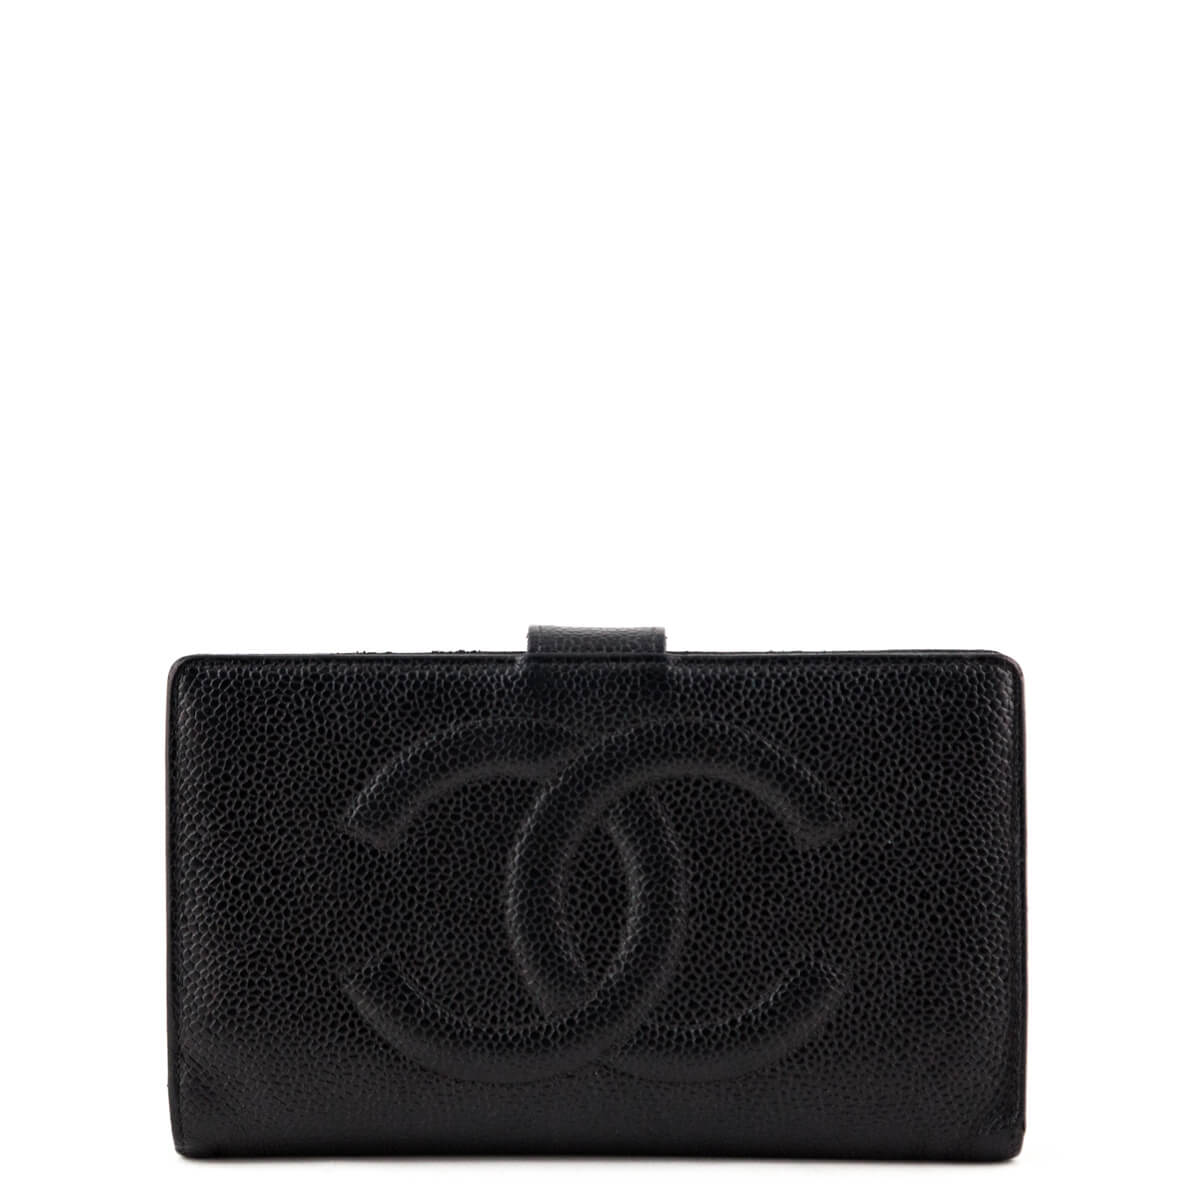 e3488bb3721b Chanel Black Caviar Vintage CC Timeless French Purse Wallet - LOVE that BAG  - Preowned Authentic ...